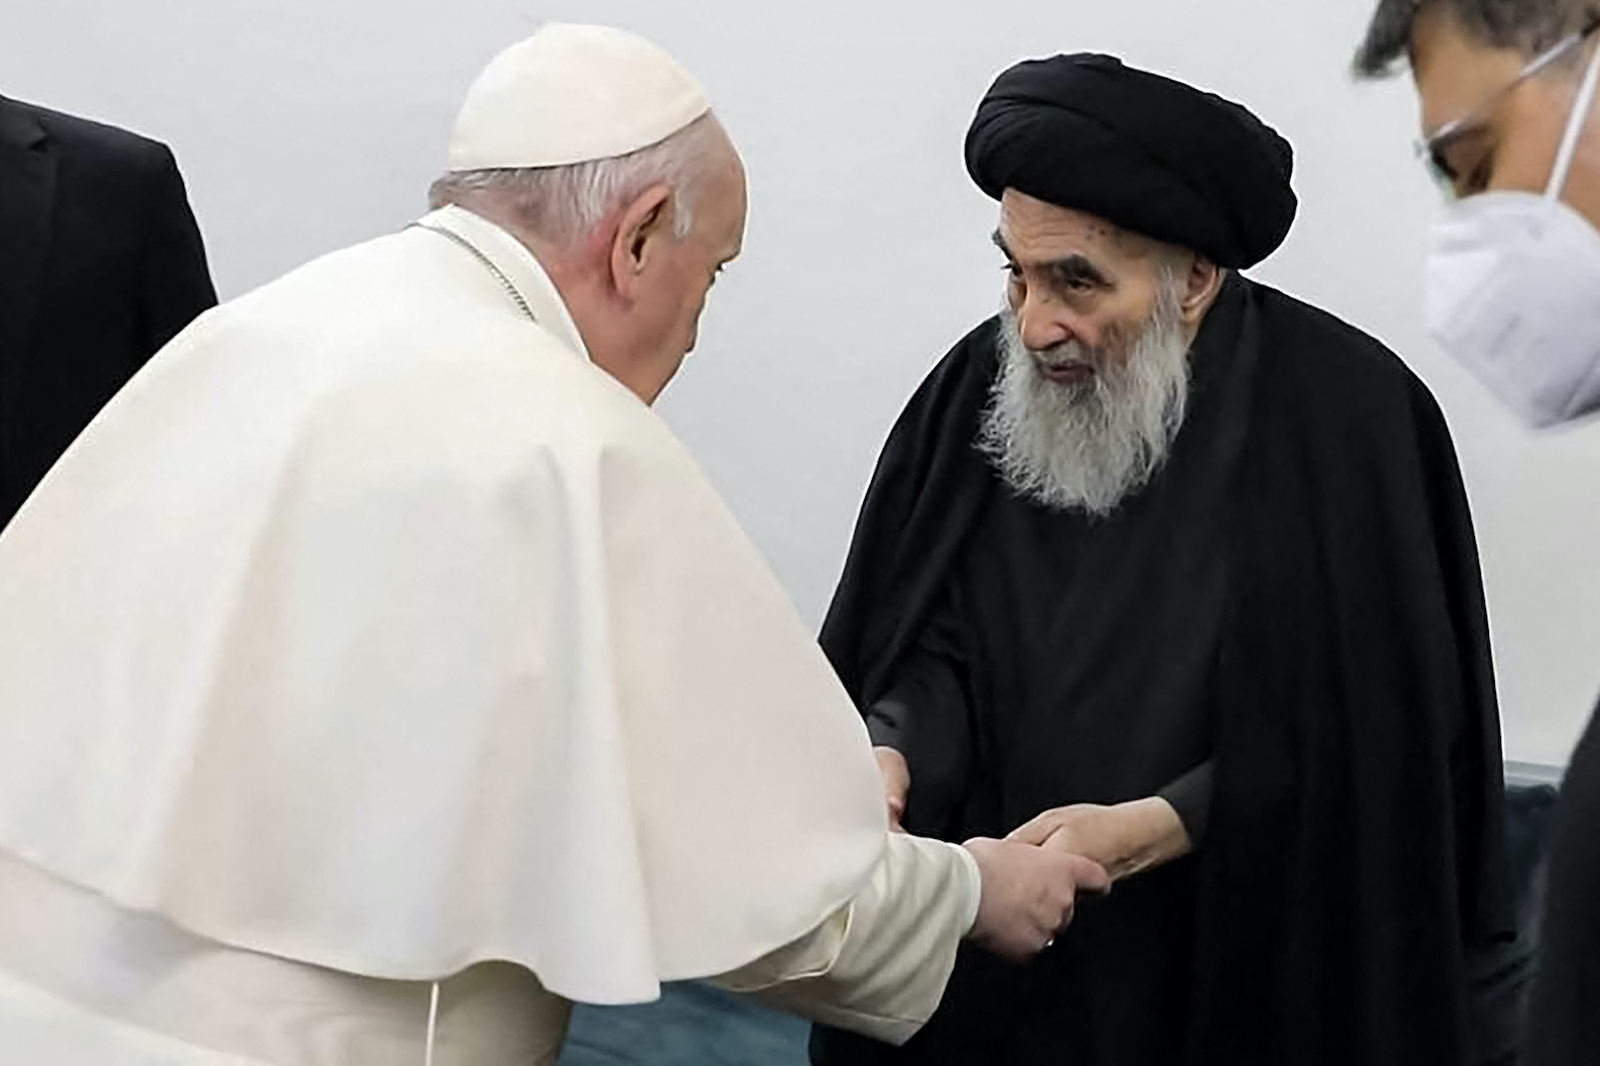 Iraq's most revered Shiite cleric, Grand Ayatollah Ali al-Sistani, at his home in the holy city of Najaf, receives Pope Francis on March 6, 2021. Photo: AFP/Ayatollah Sistani's Media Office